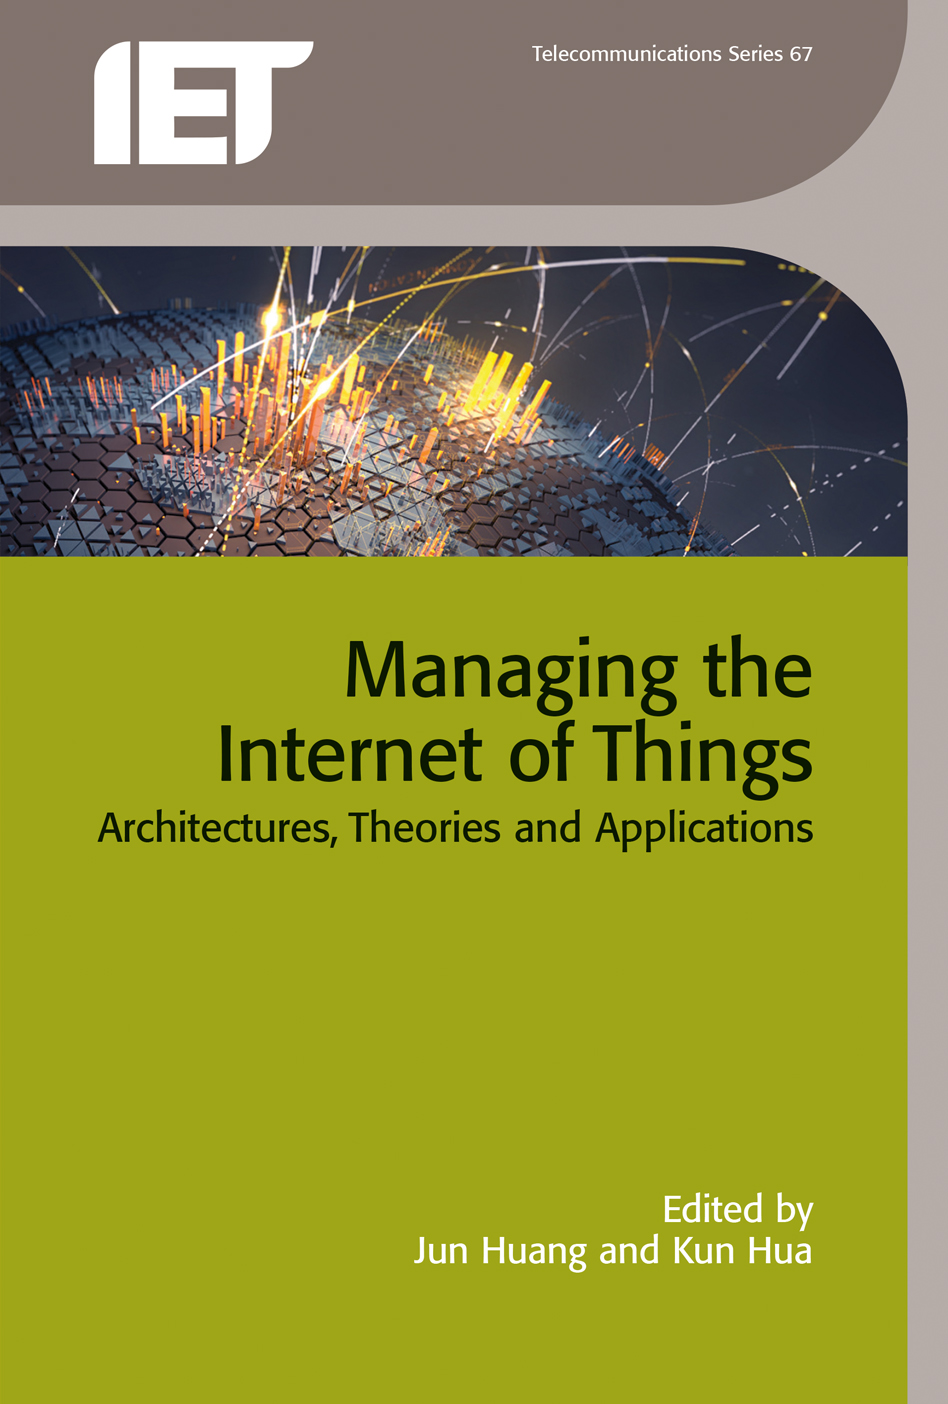 Managing the Internet of Things, Architectures, theories and applications